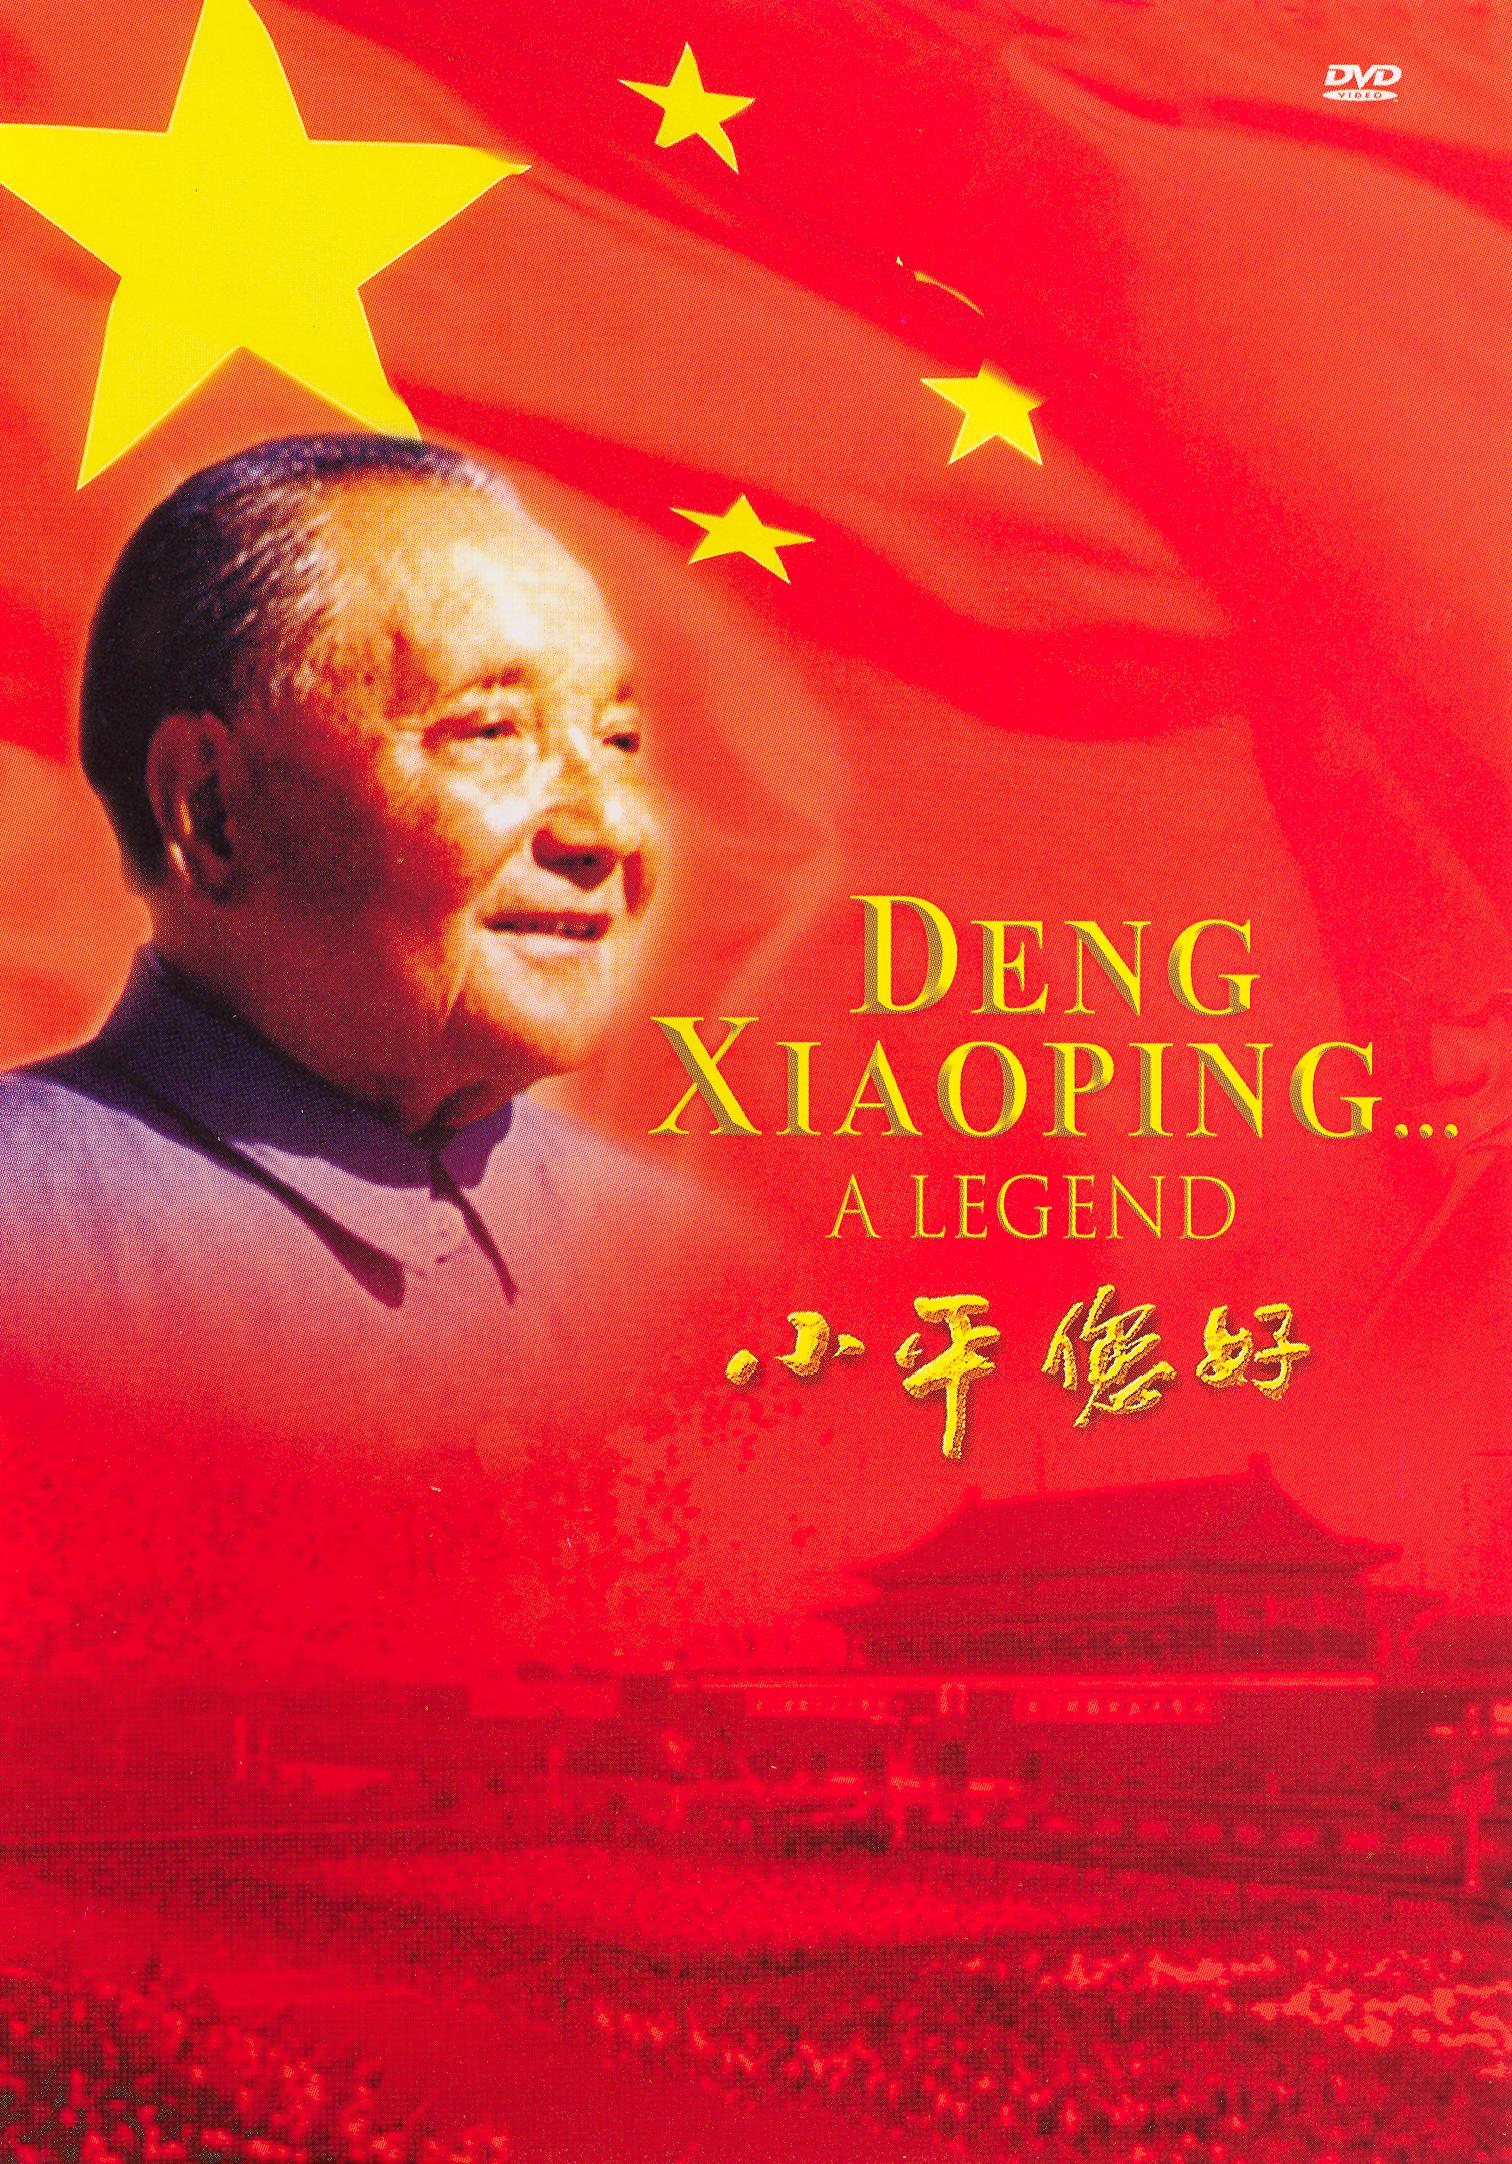 a biography of deng xiaopeng a leader of china Deng xiaoping also got the support of military leaders of northern and southern china with all this support, he convinced hua guofeng, the premier of china, to i was stumbling through the shelves looking for a biography about a famous person i started going through each biography alphabetically.